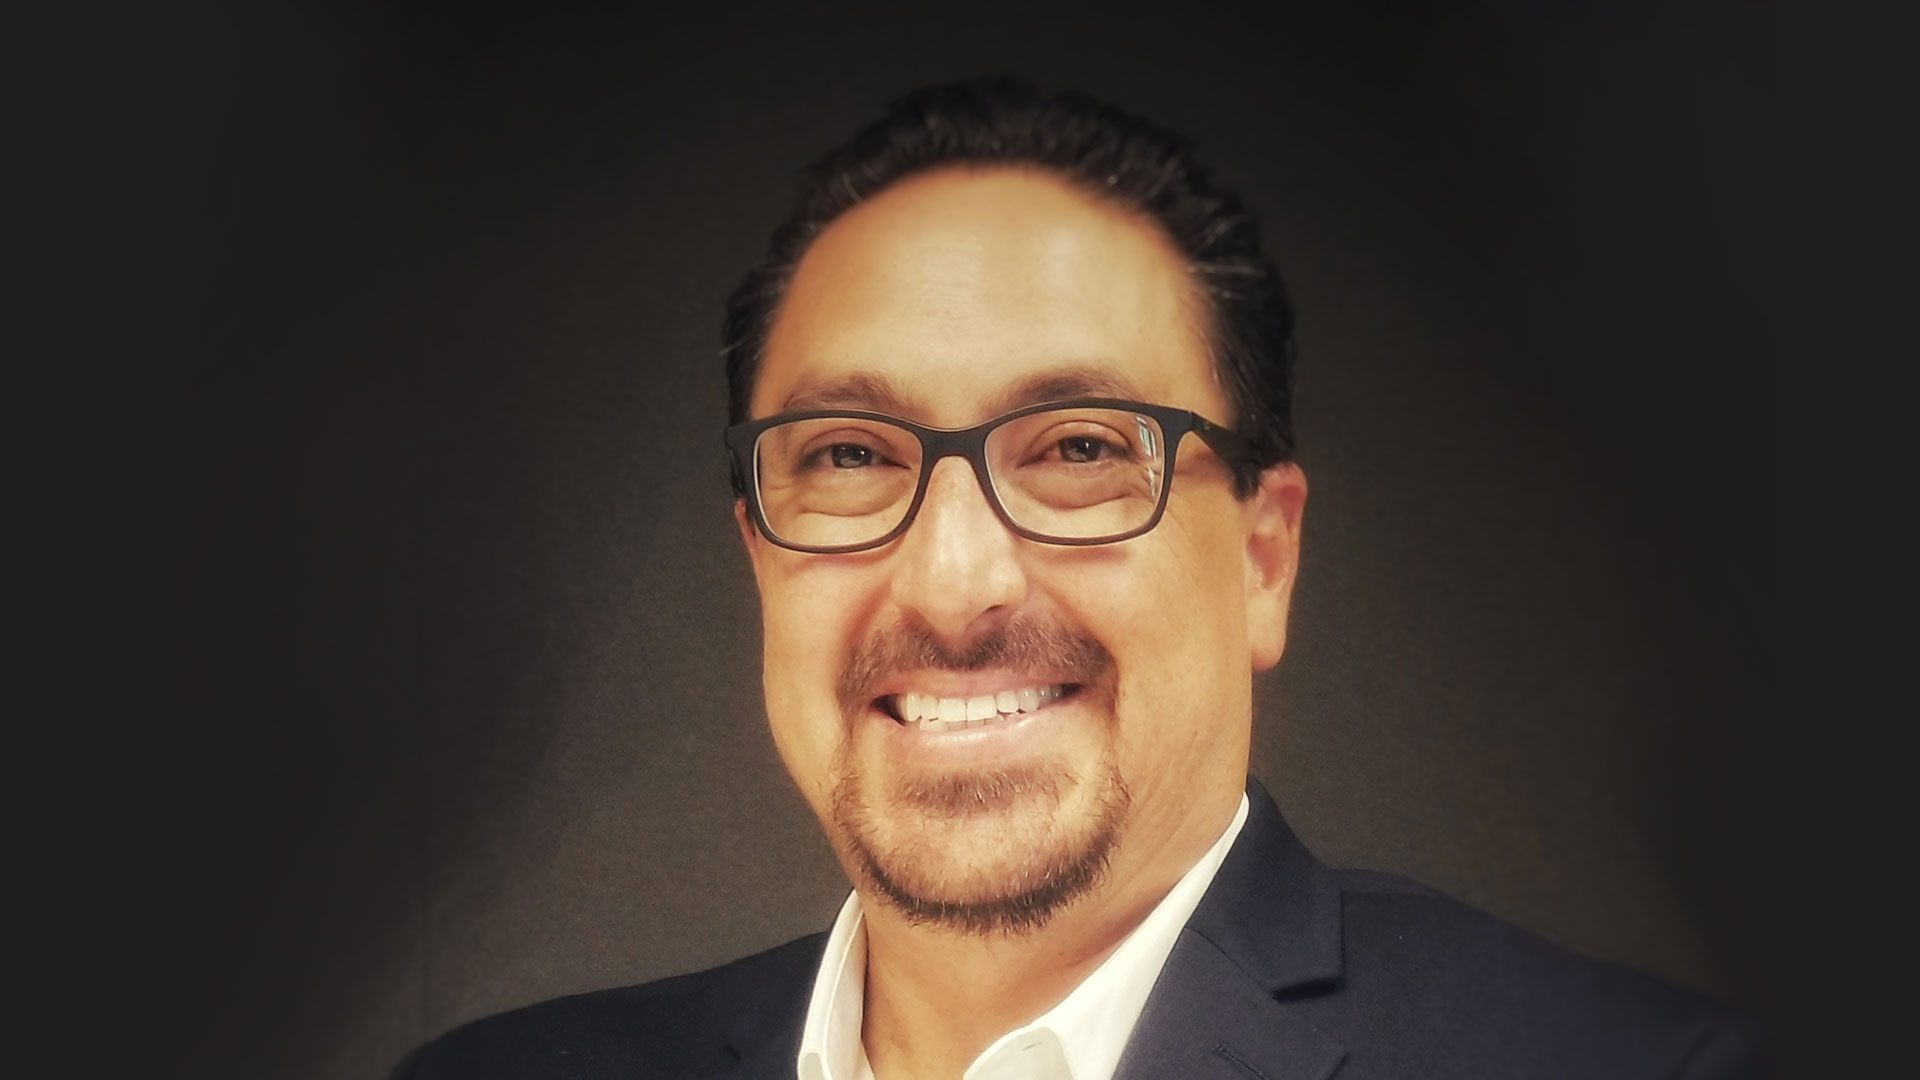 Chris Medina Joins Clovity as Chief Strategy Officer (CSO), Solidifies its Leadership and Advisory Board and Strengthens its Footprint in IoT, Big Data & Cloud Solutions